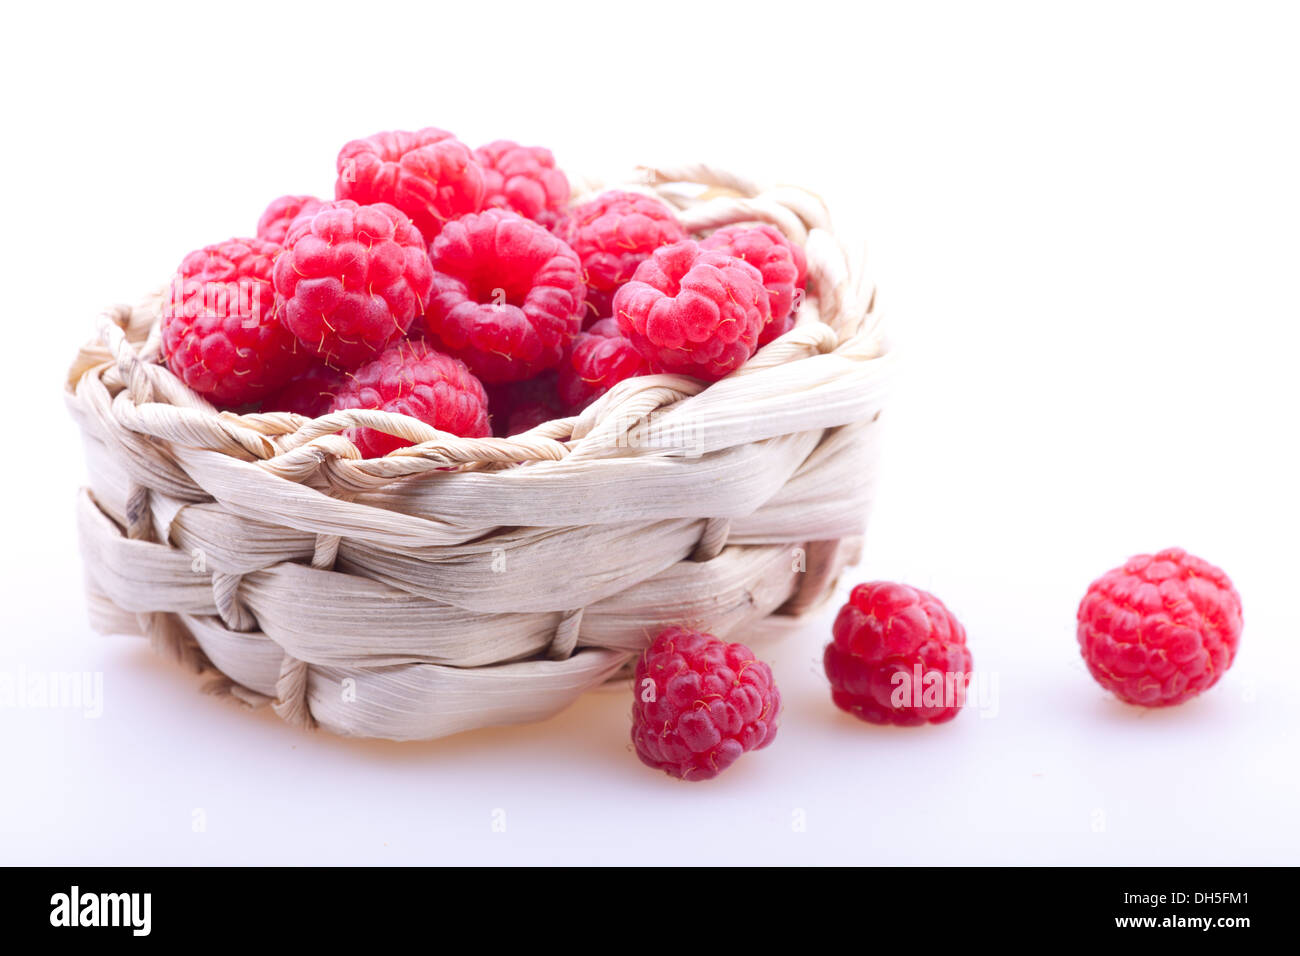 Bast-basket with a raspberry - Stock Image